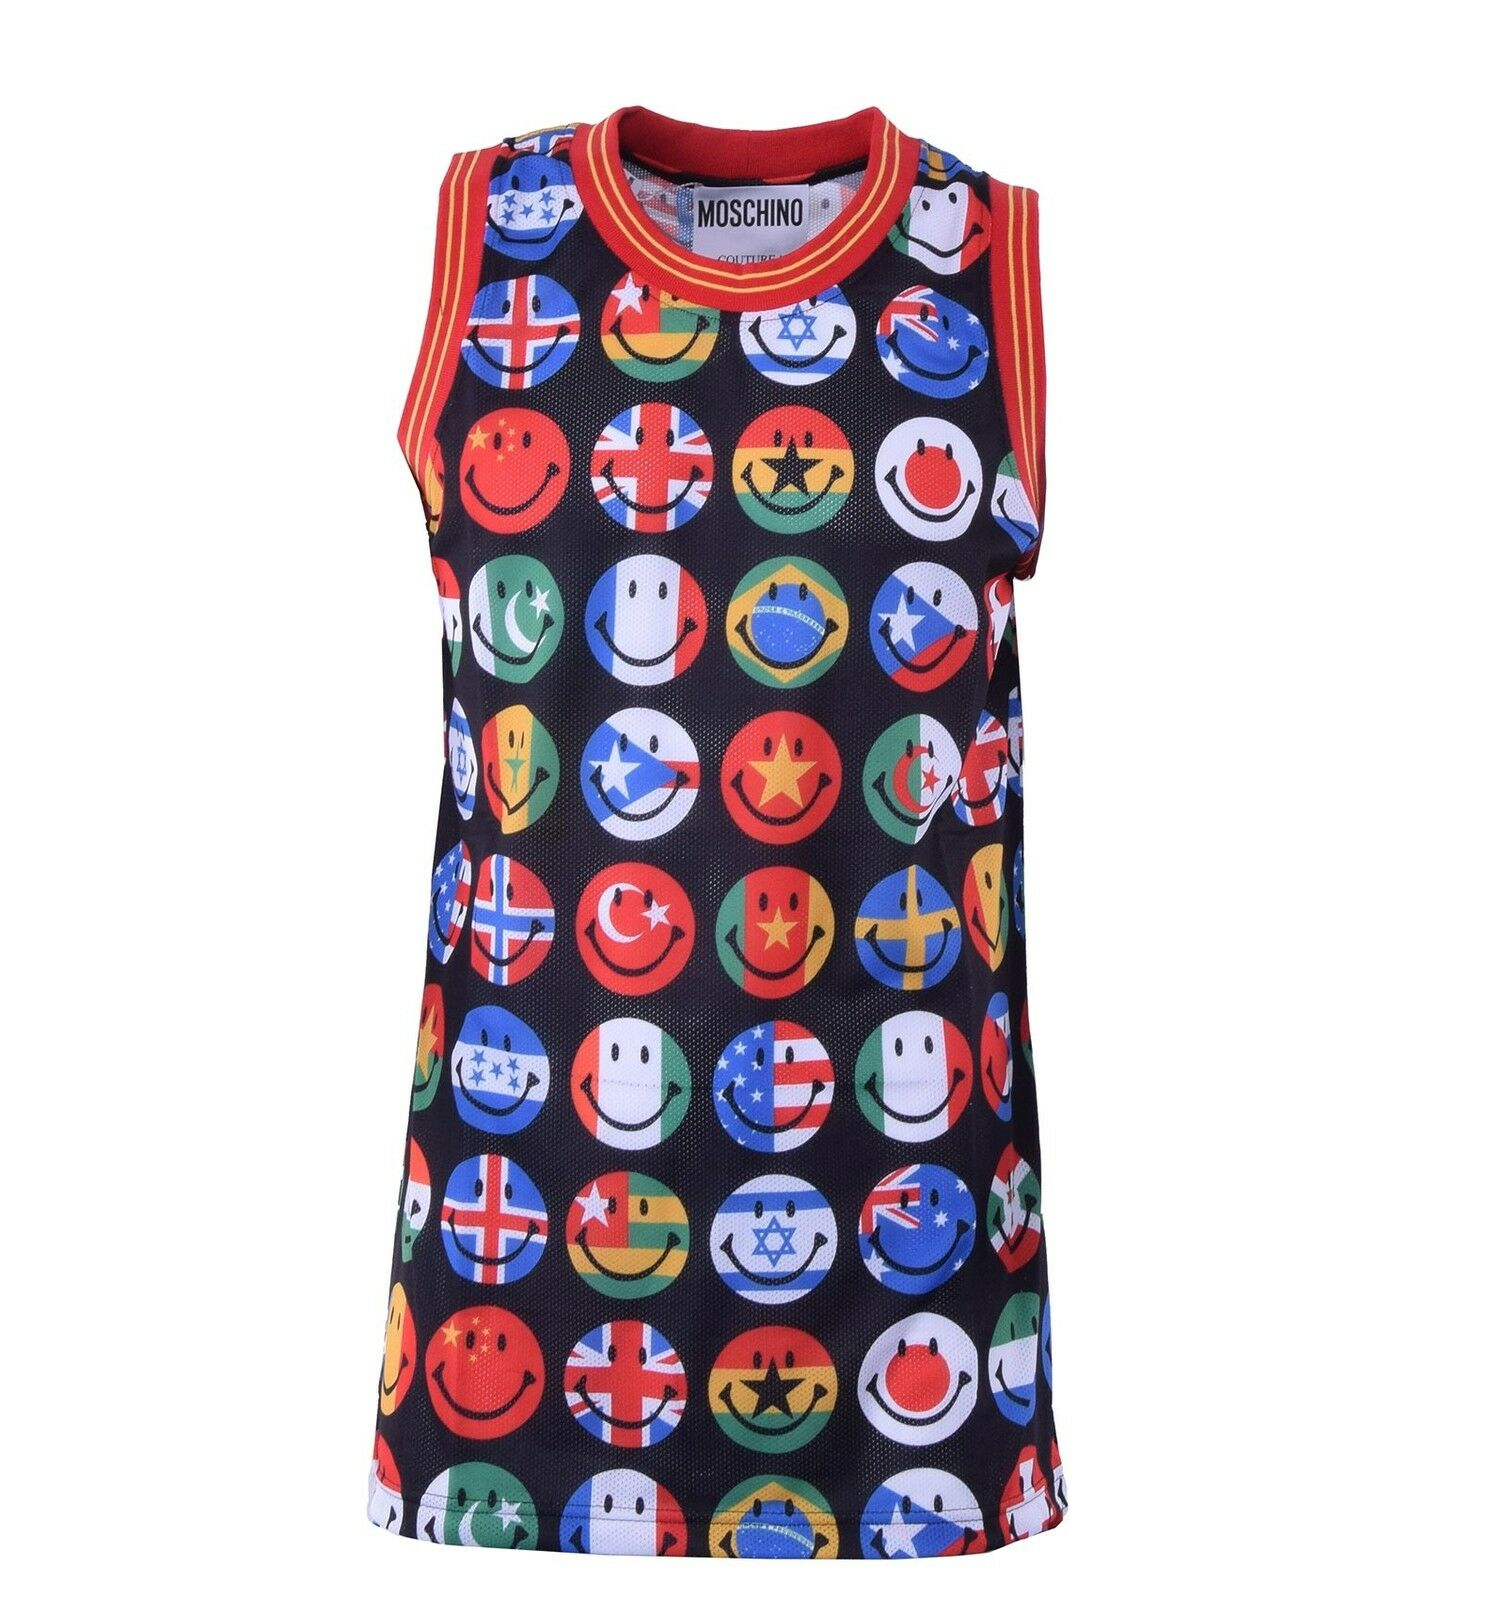 MOSCHINO COUTURE Smiley Tank Top T-Shirt Muskelshirt mit Flaggen Print 04455